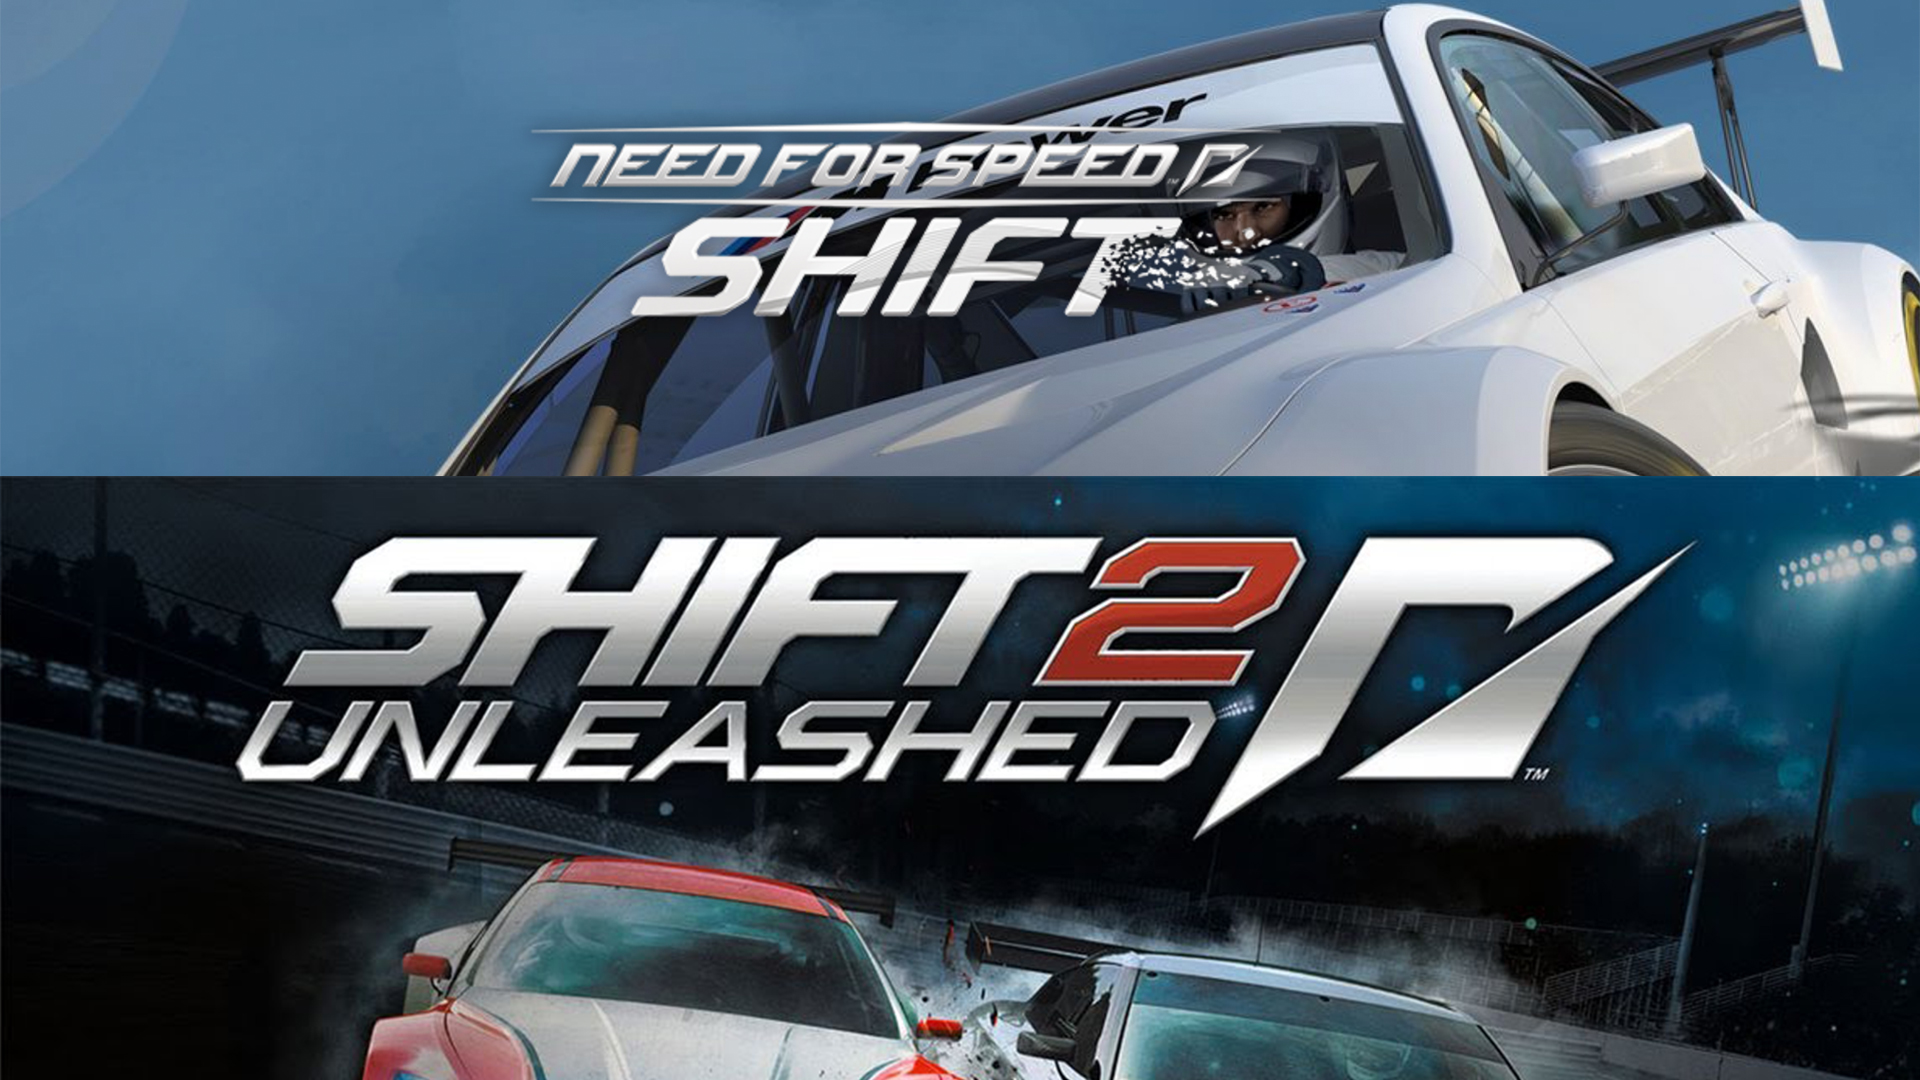 Final Logos: Need For Speed Shift, Need For Speed Shift 2